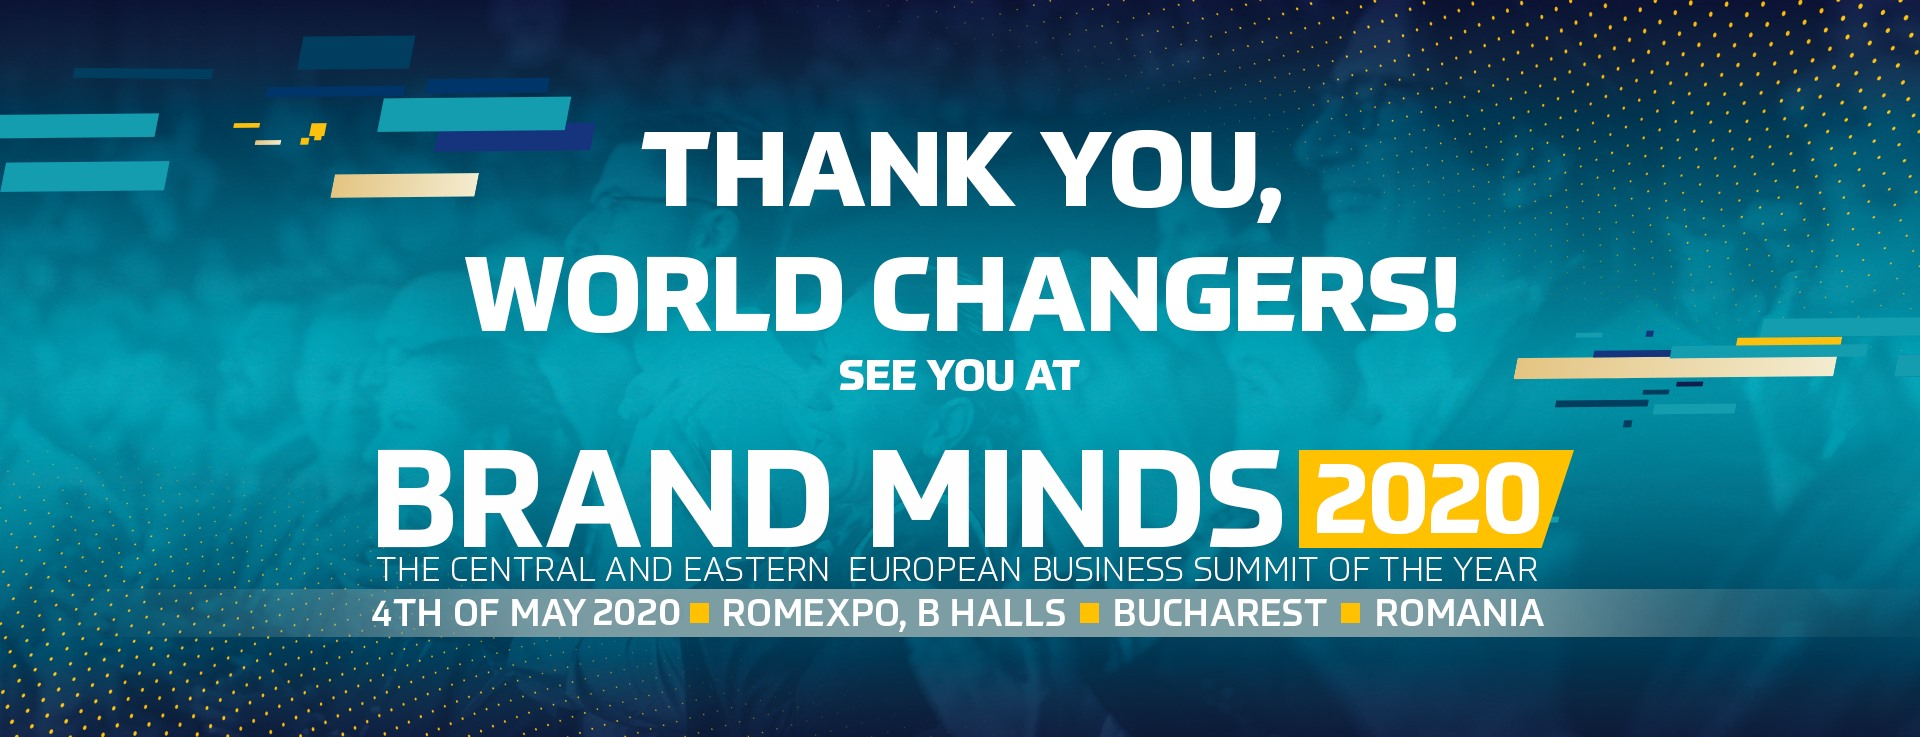 see_you_brand_minds_2020